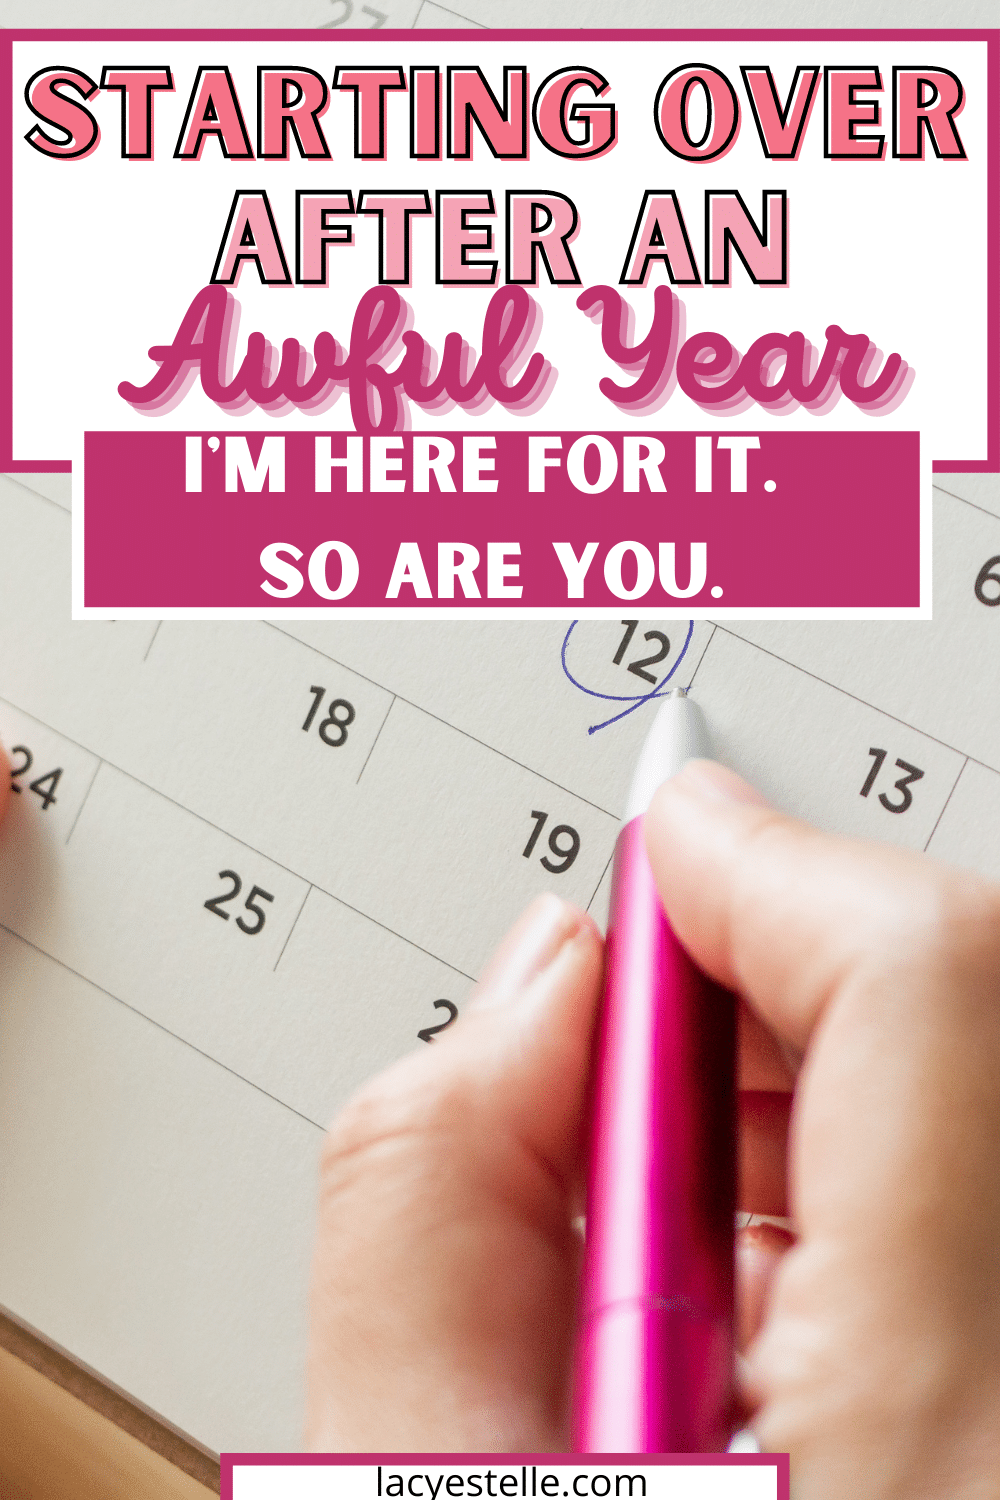 Starting over after a really bad year. How to start over after a terrible year. New years resolutions that stick.